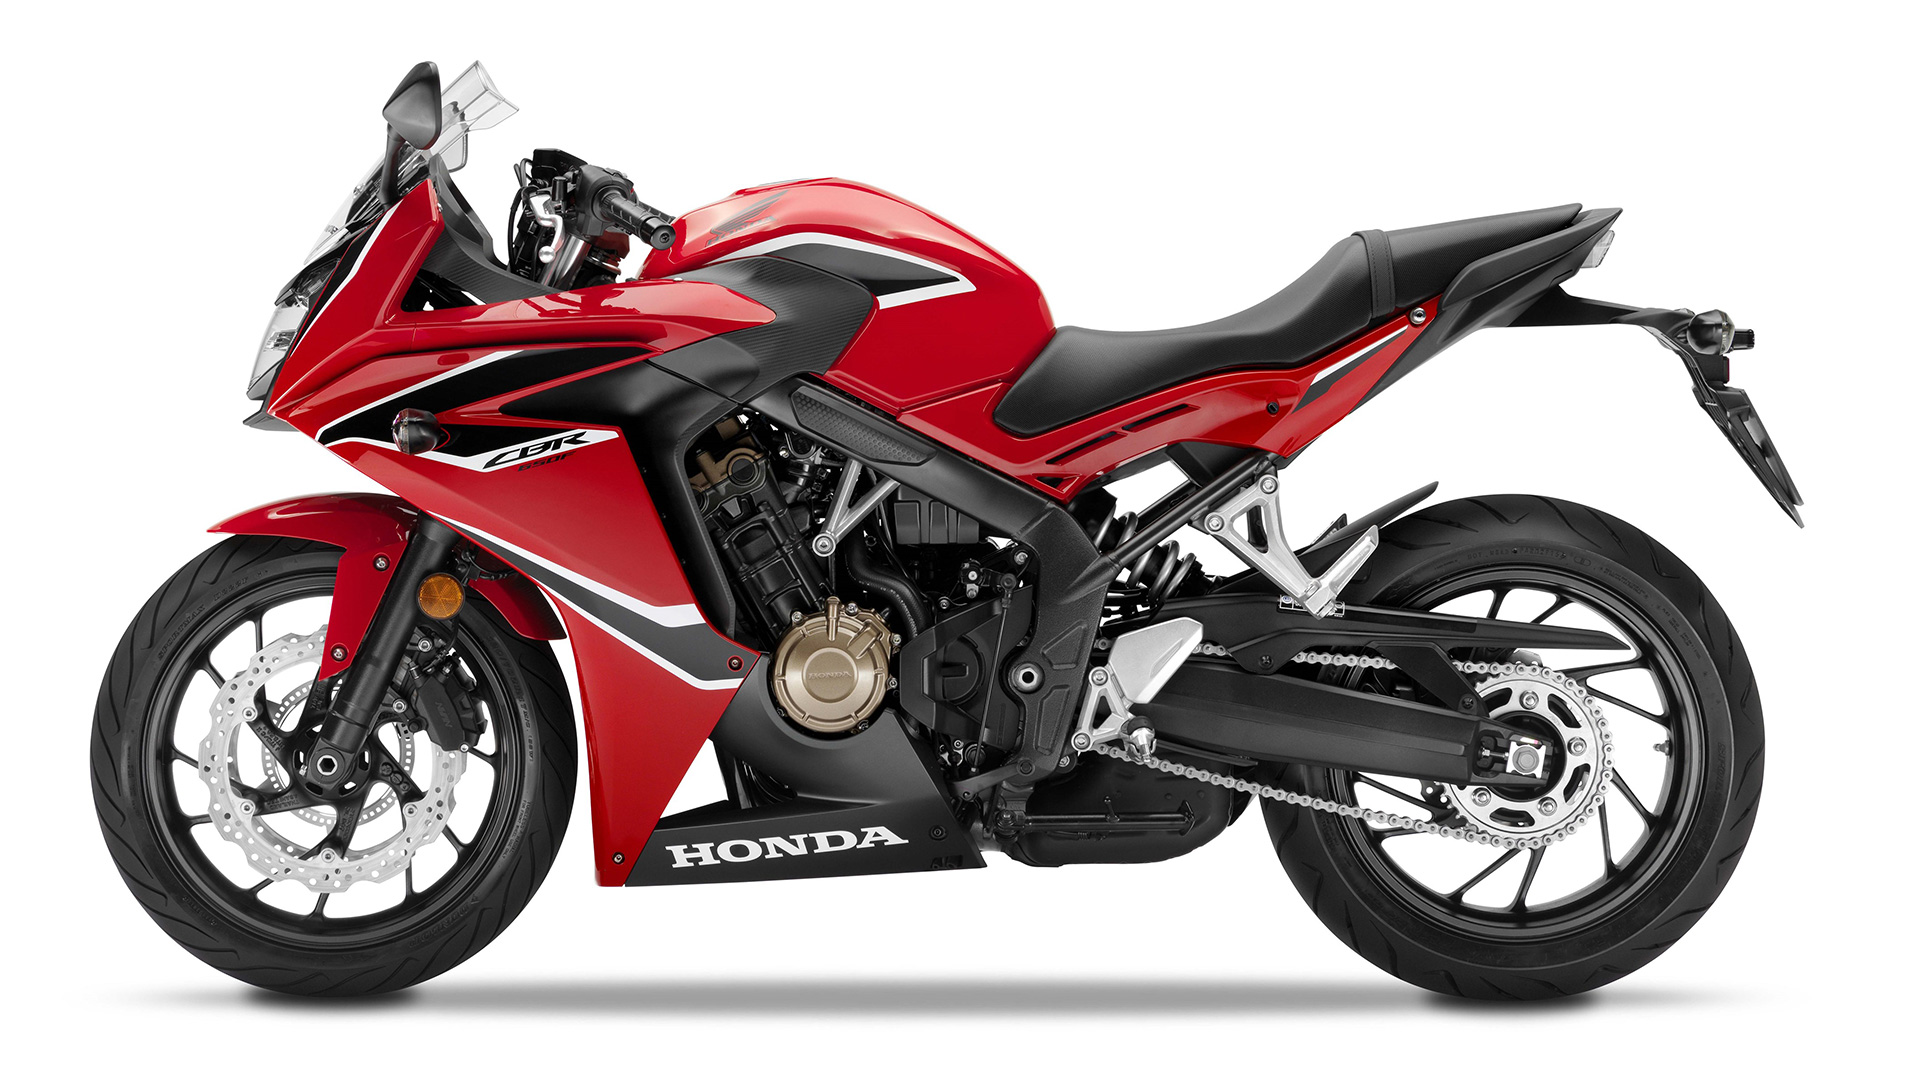 honda cbr650f 2017 price mileage reviews specification gallery overdrive. Black Bedroom Furniture Sets. Home Design Ideas